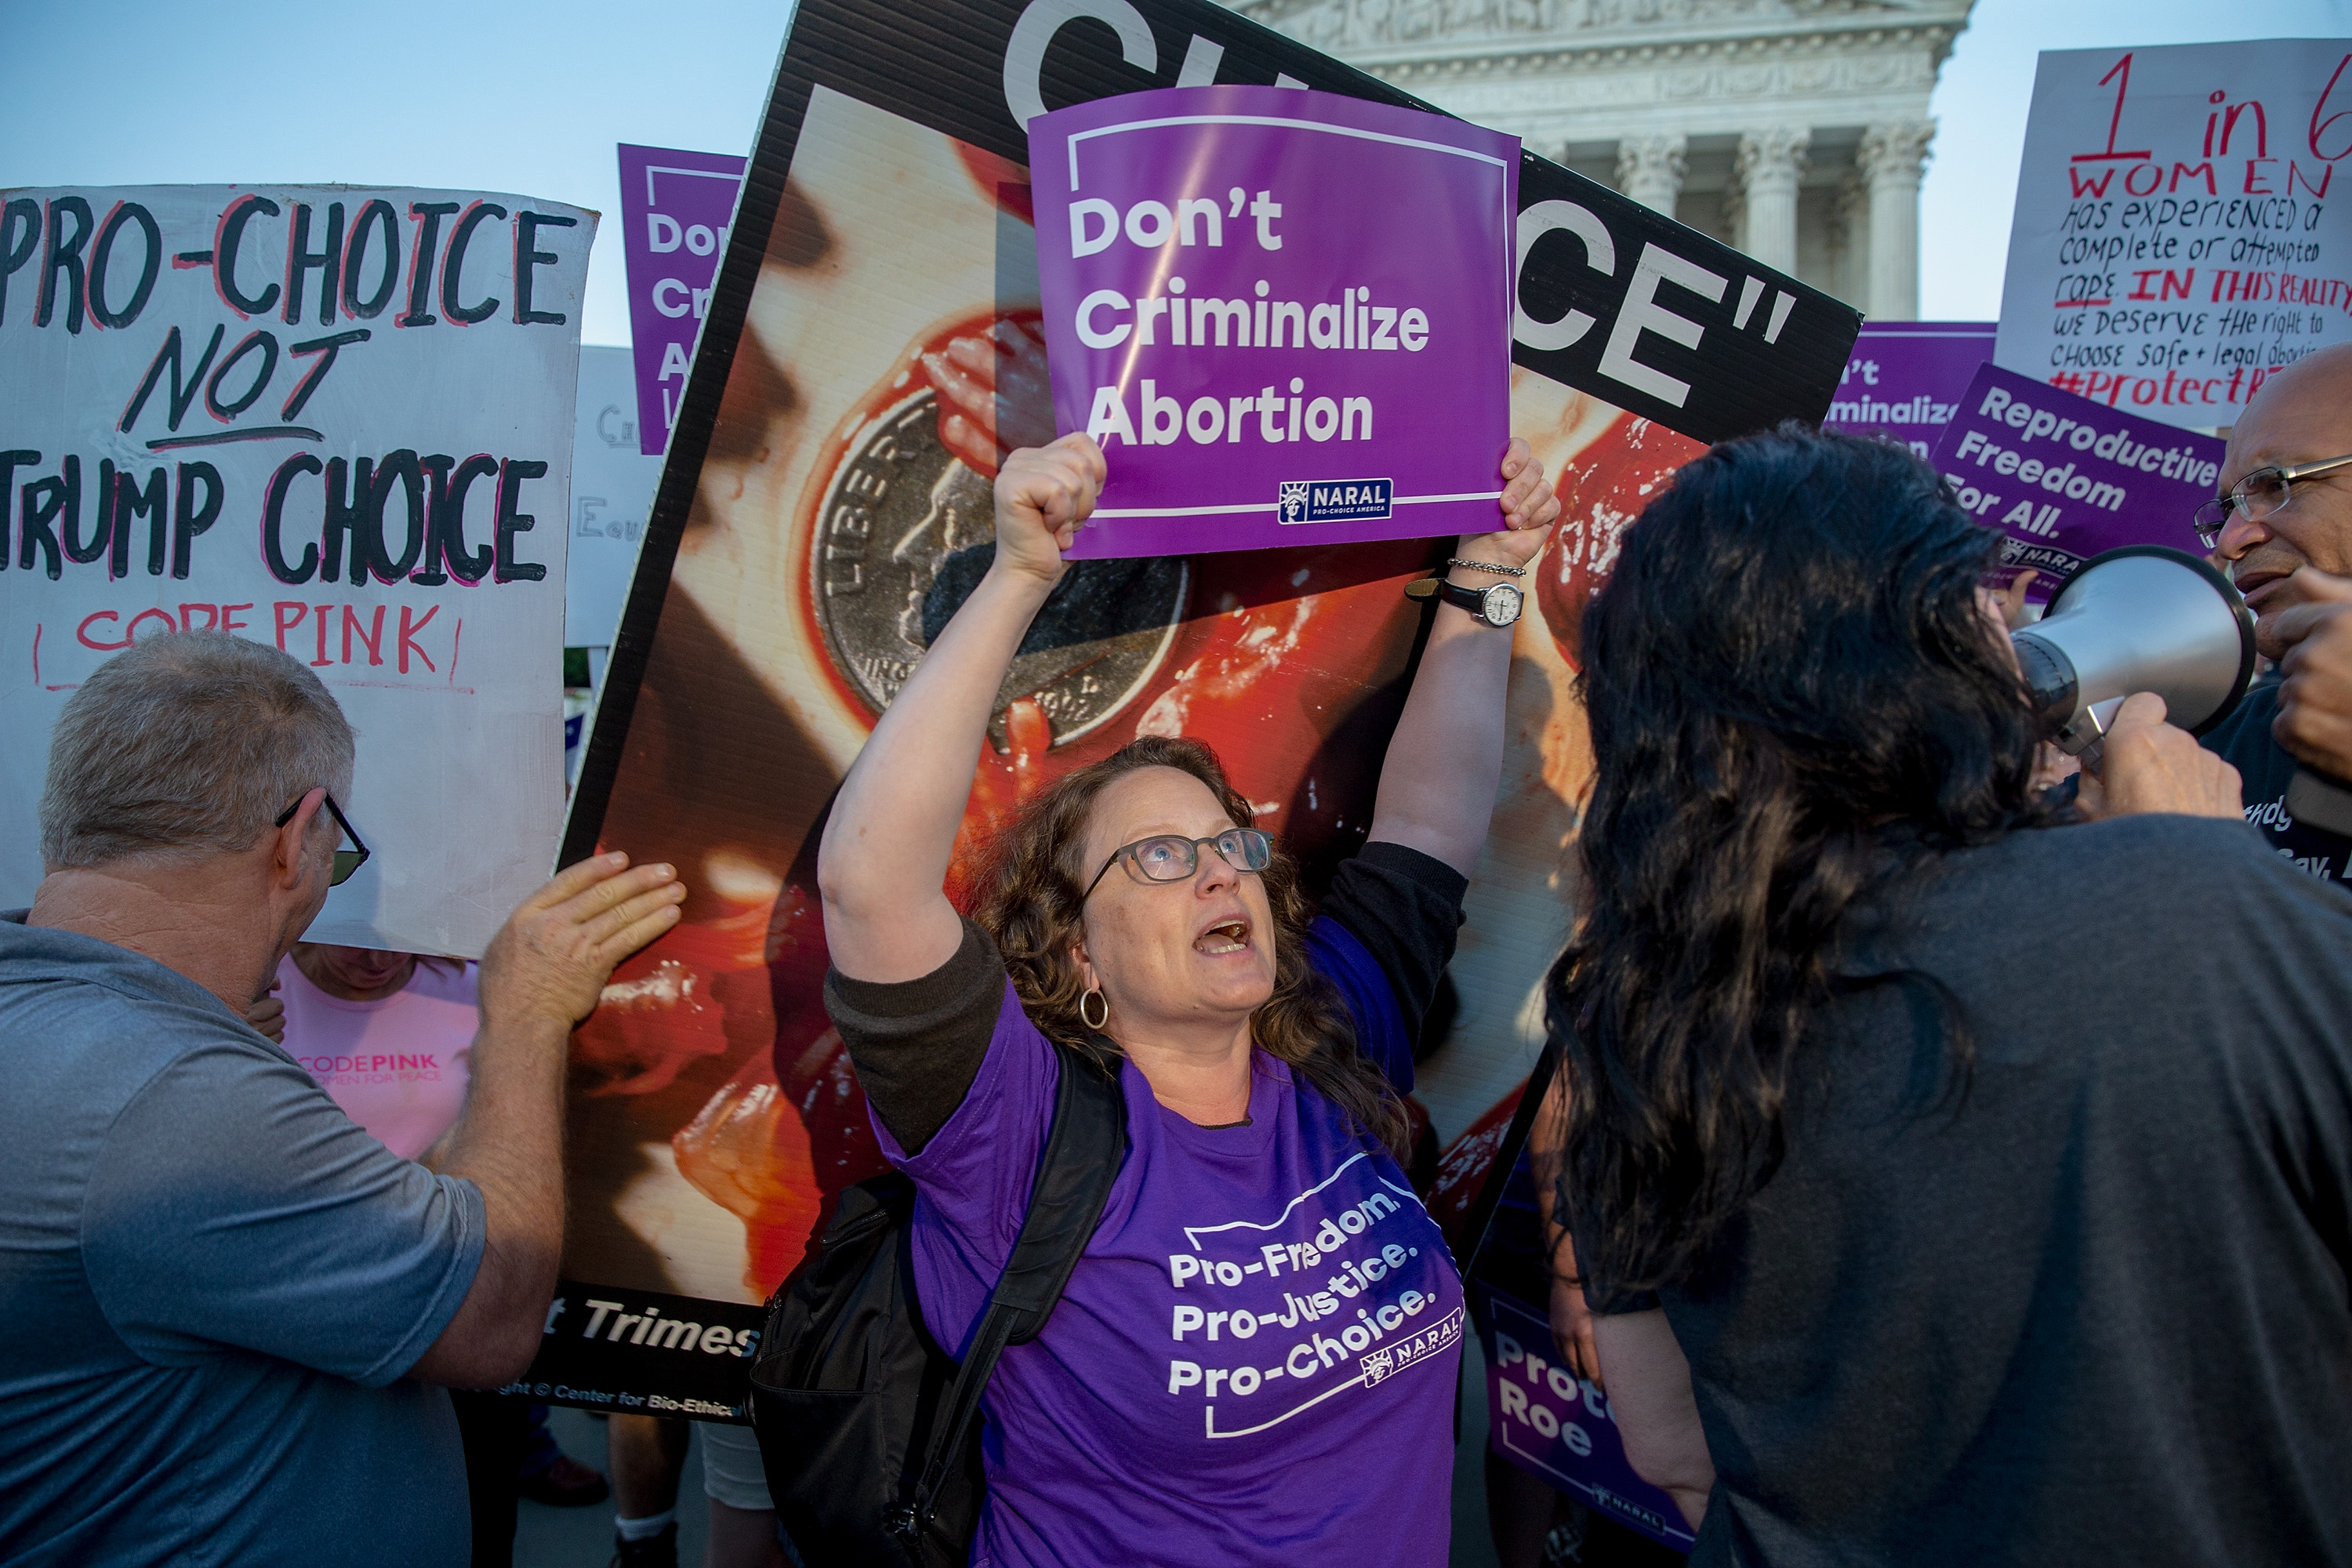 A leader in the fight to protect Roe v. Wade lays out the plan to stop Brett Kavanaugh